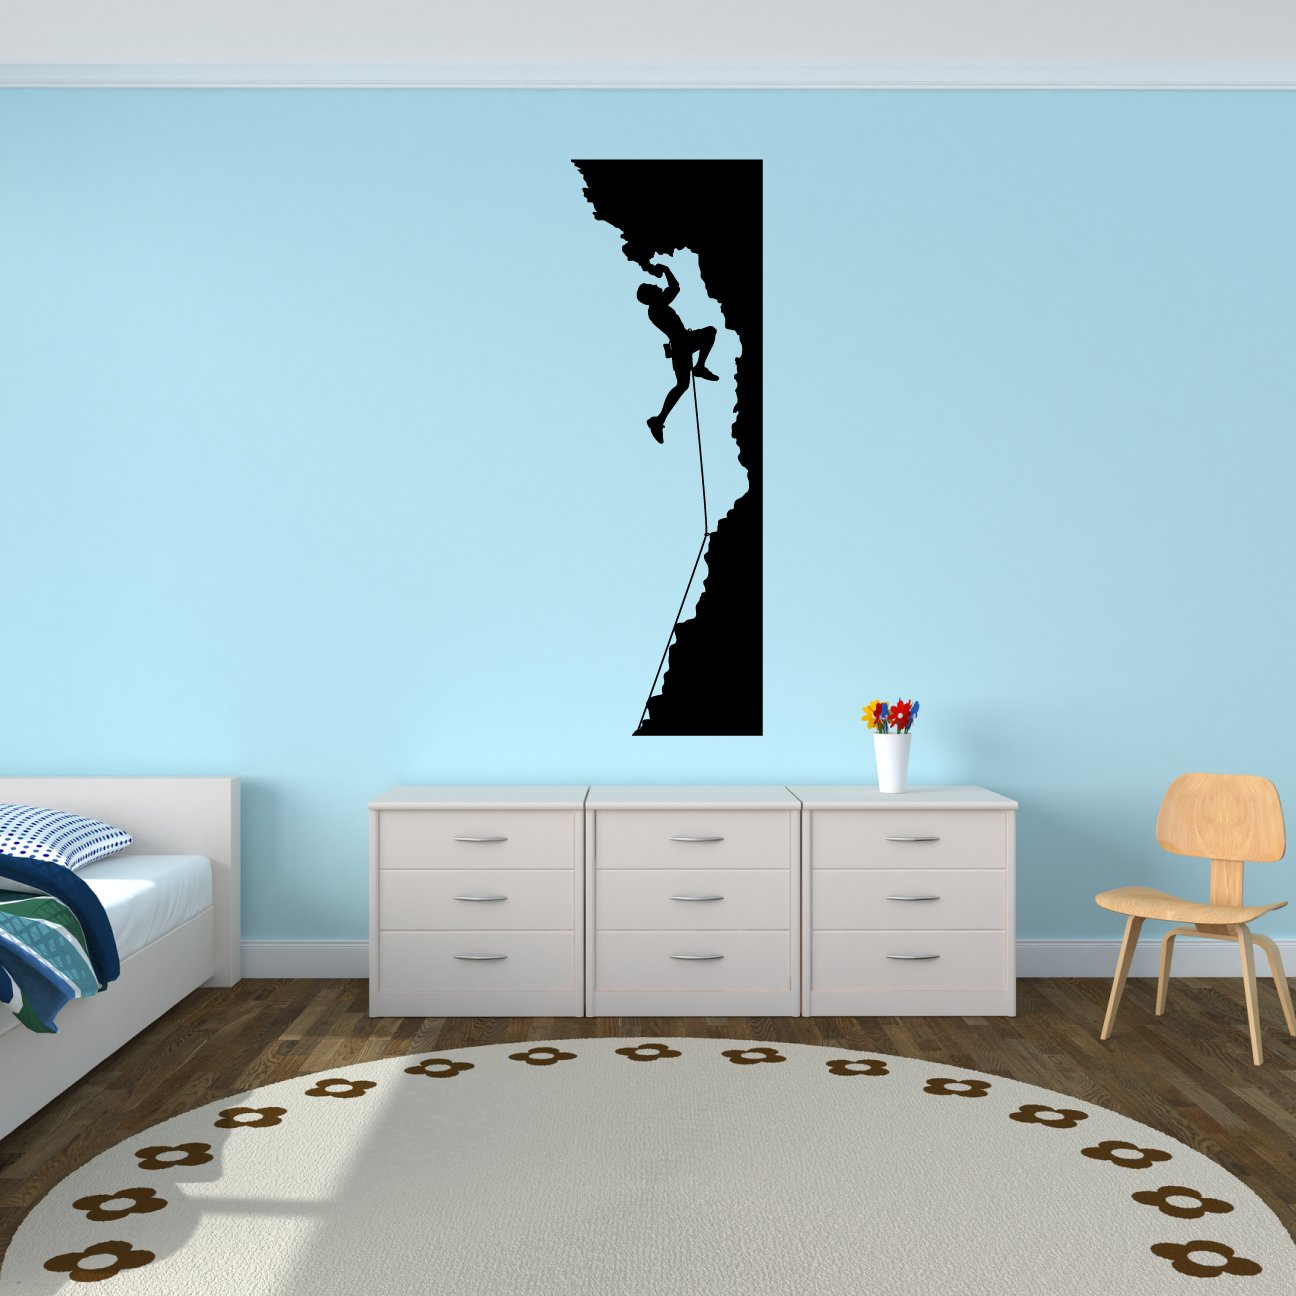 Amazon.com: Rock Climbing Wall Decal Sticker 4   Decal Stickers And Mural  For Kids Boys Girls Room And Bedroom. Mountain Climbing Climber Wall Art  For Home ...